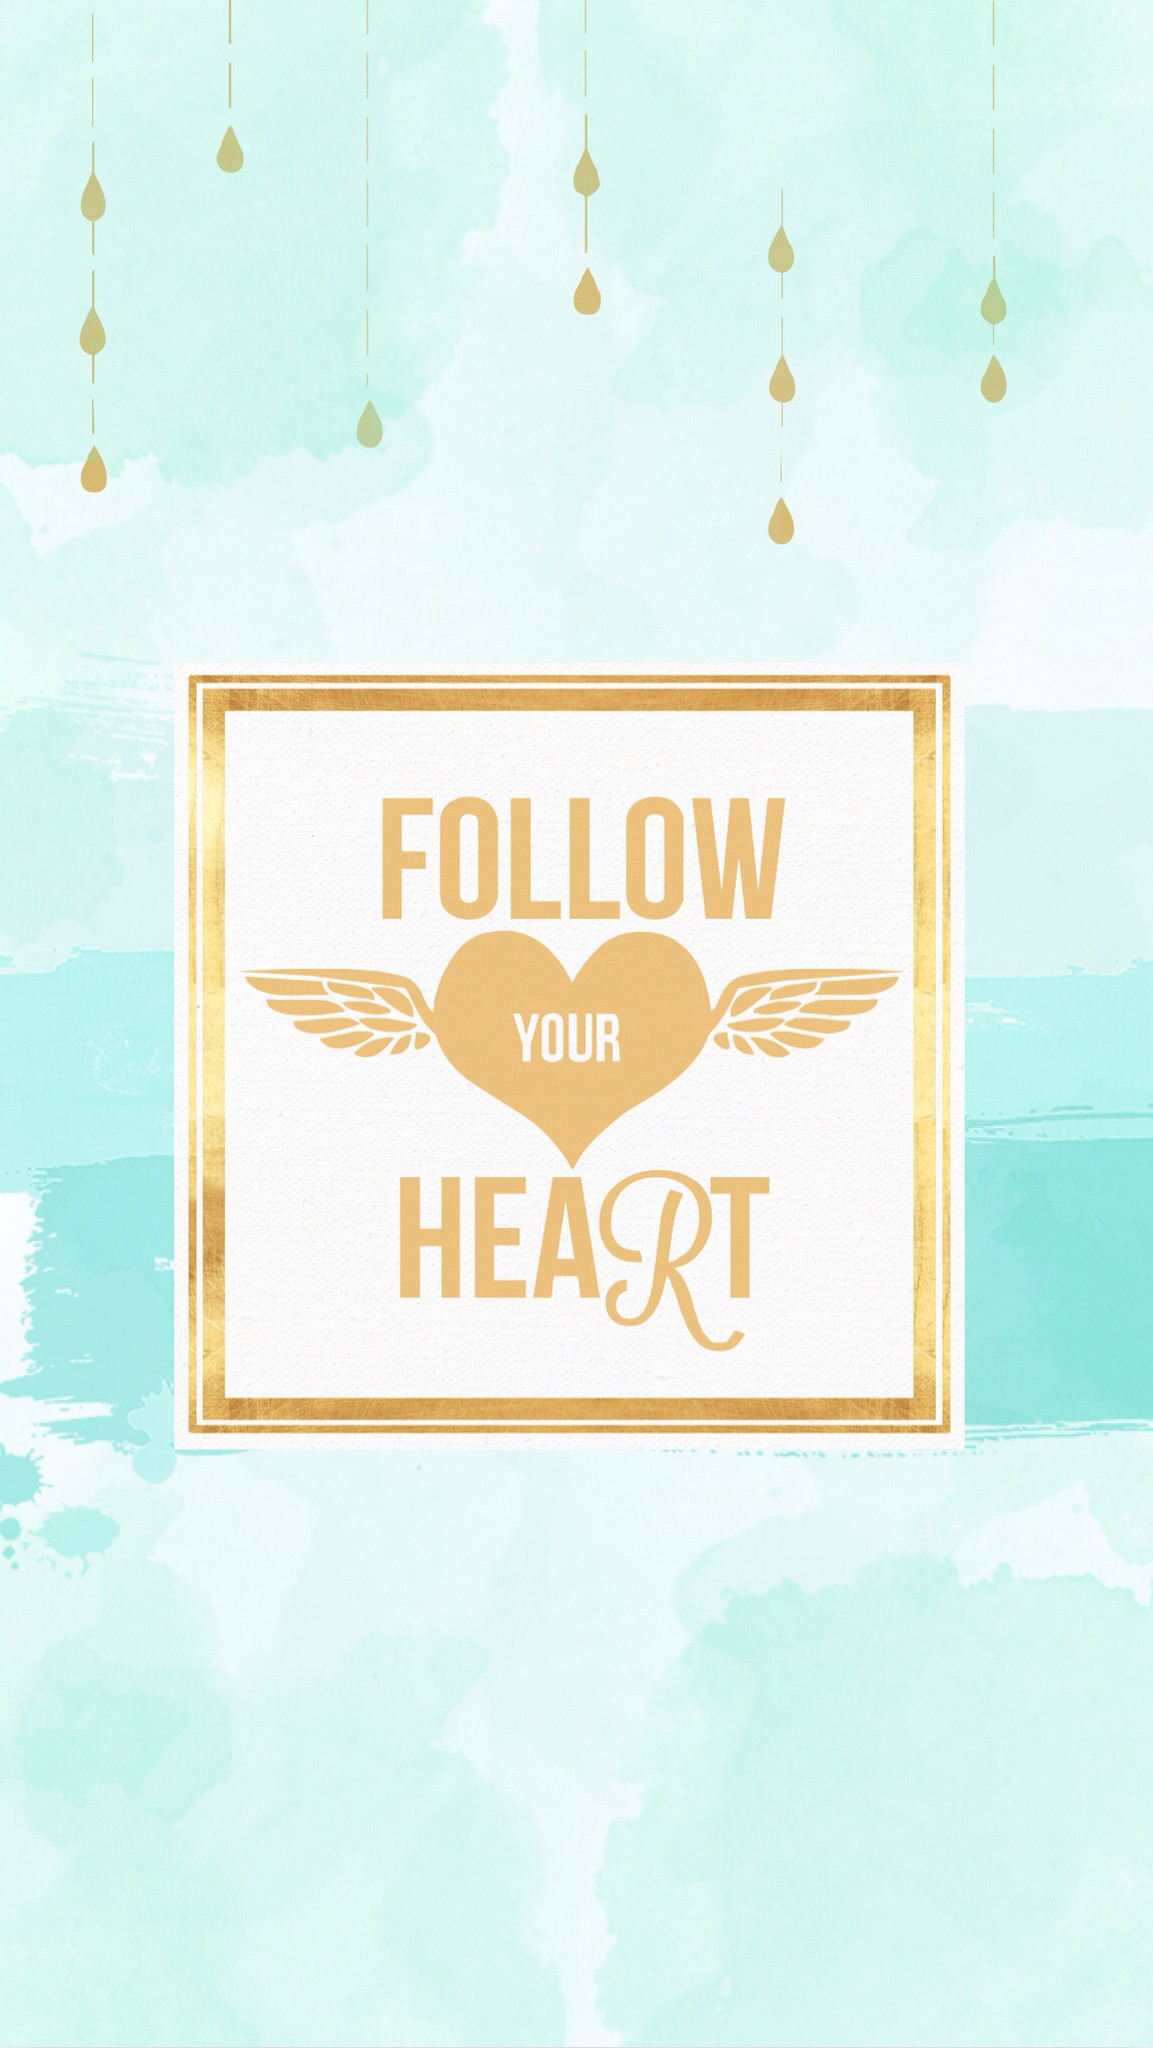 1153x2048 Aqua watercolour gold wings Follow Heart wallpaper background phone iphone  lock screen